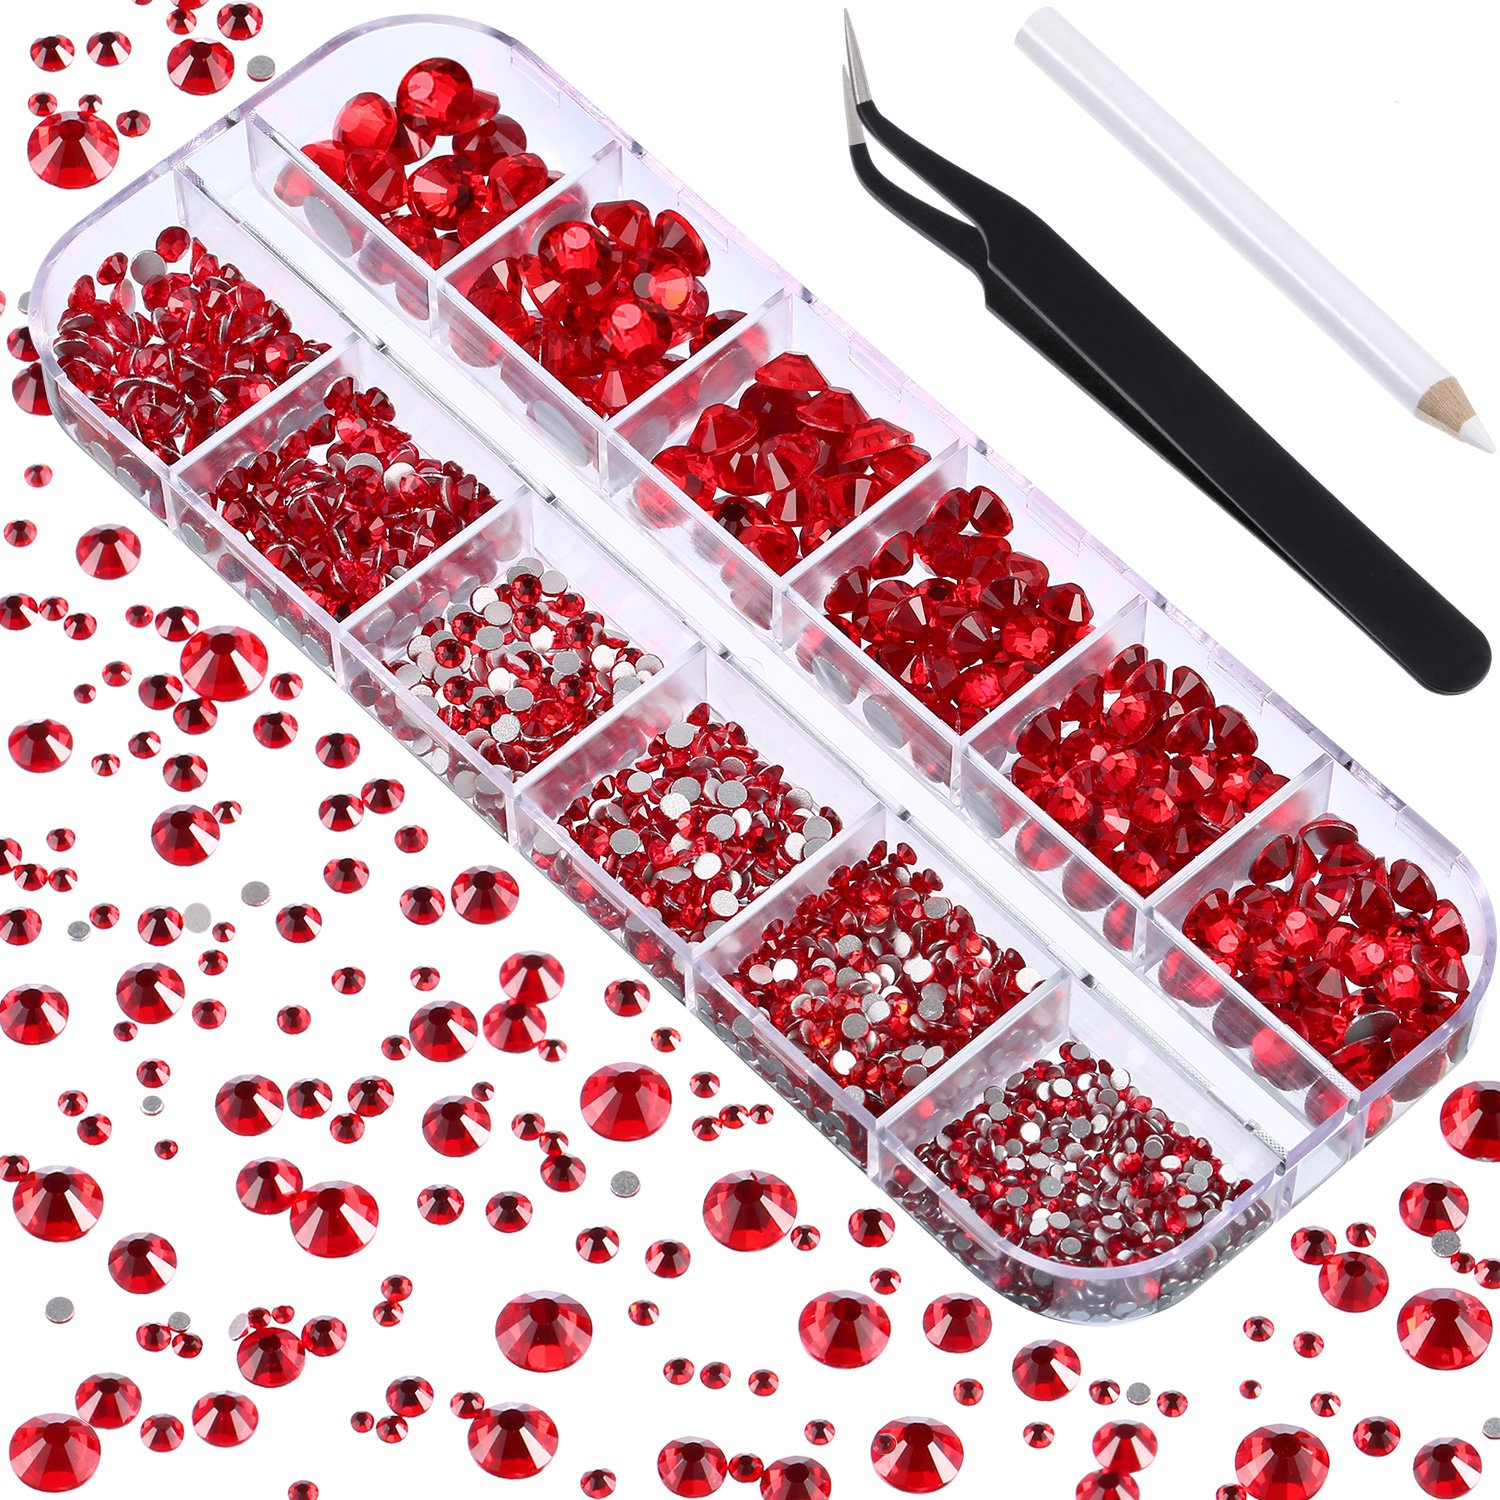 TecUnite 2000 Pieces Flat Back Gems Round Crystal Rhinestones 6 Sizes (1.5-6 mm) with Pick up Tweezer and Rhinestones Picking Pen for Crafts Nail Face Art Clothes Shoes Bags DIY (Paradise Shine)